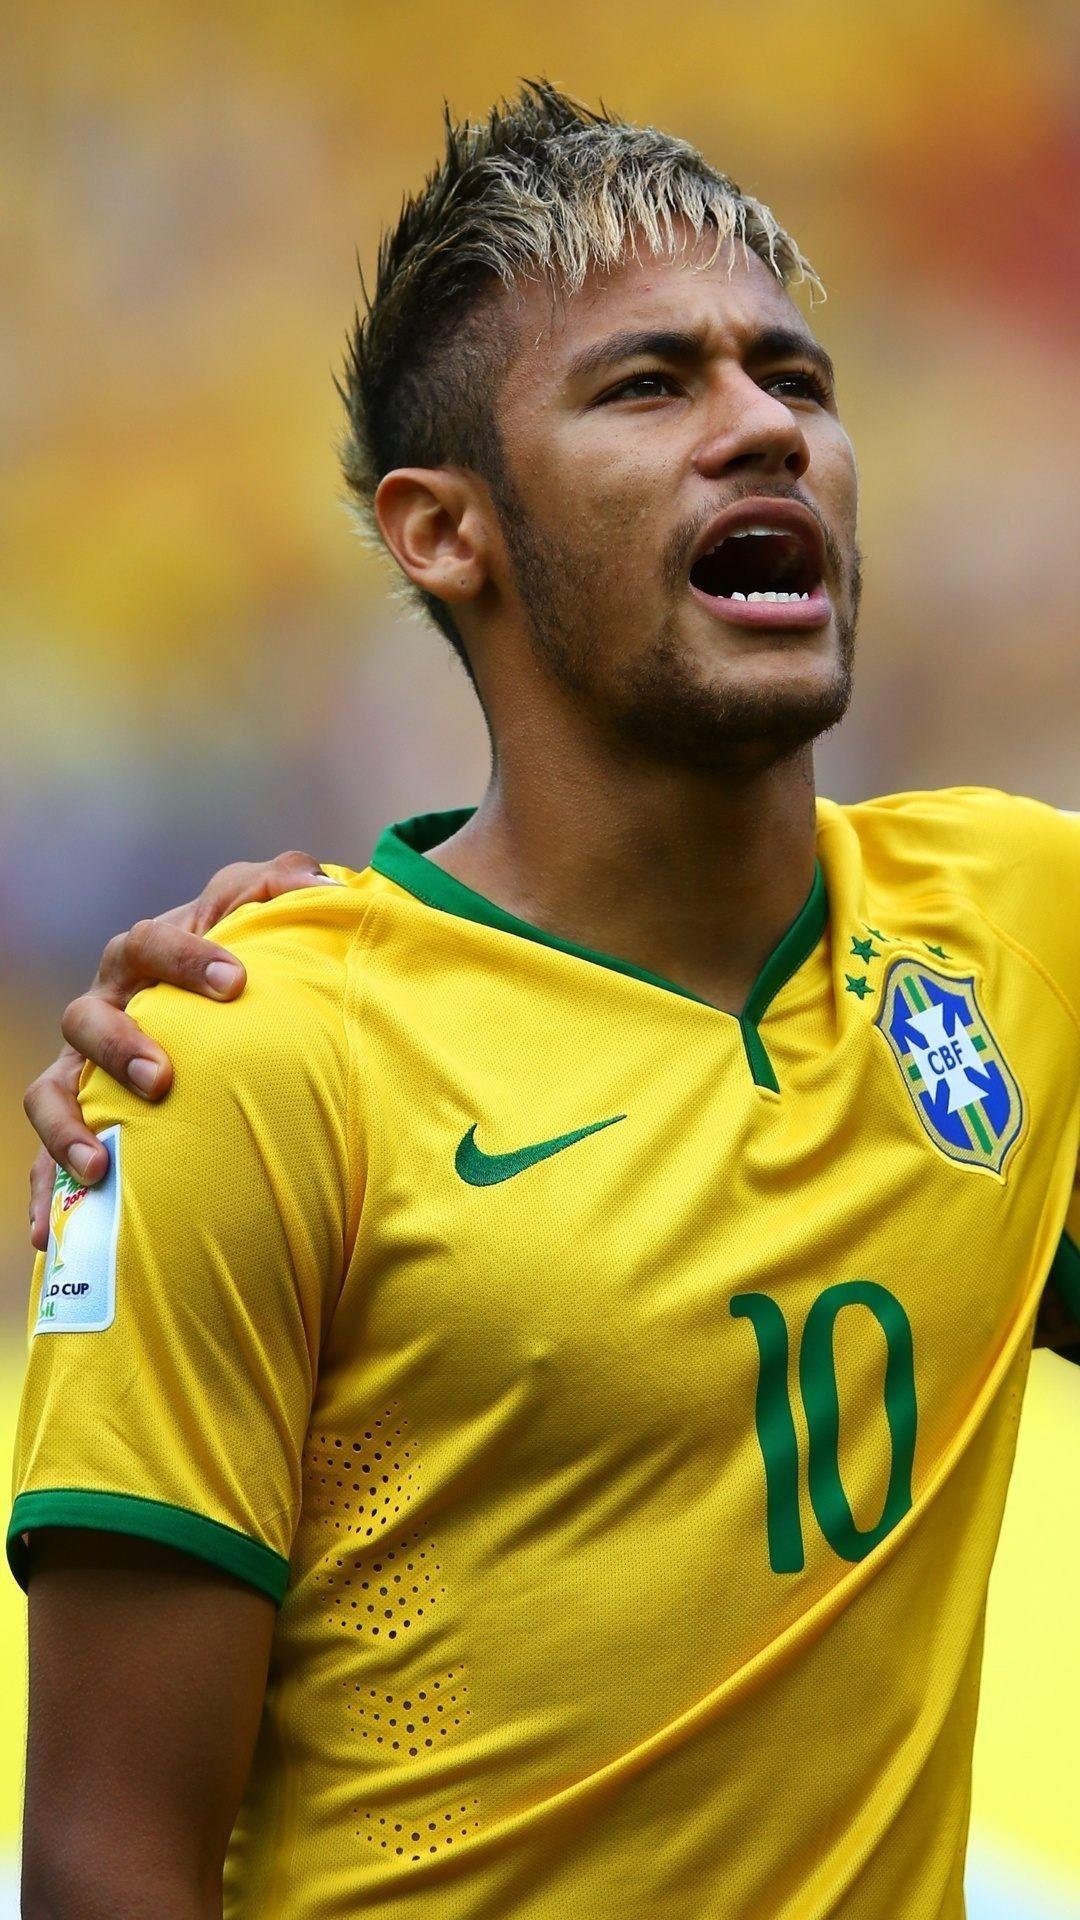 Wallpaper iphone neymar - Sport Neymar Iphone 6 Plus Wallpapers Barcelona Brazil Iphone 6